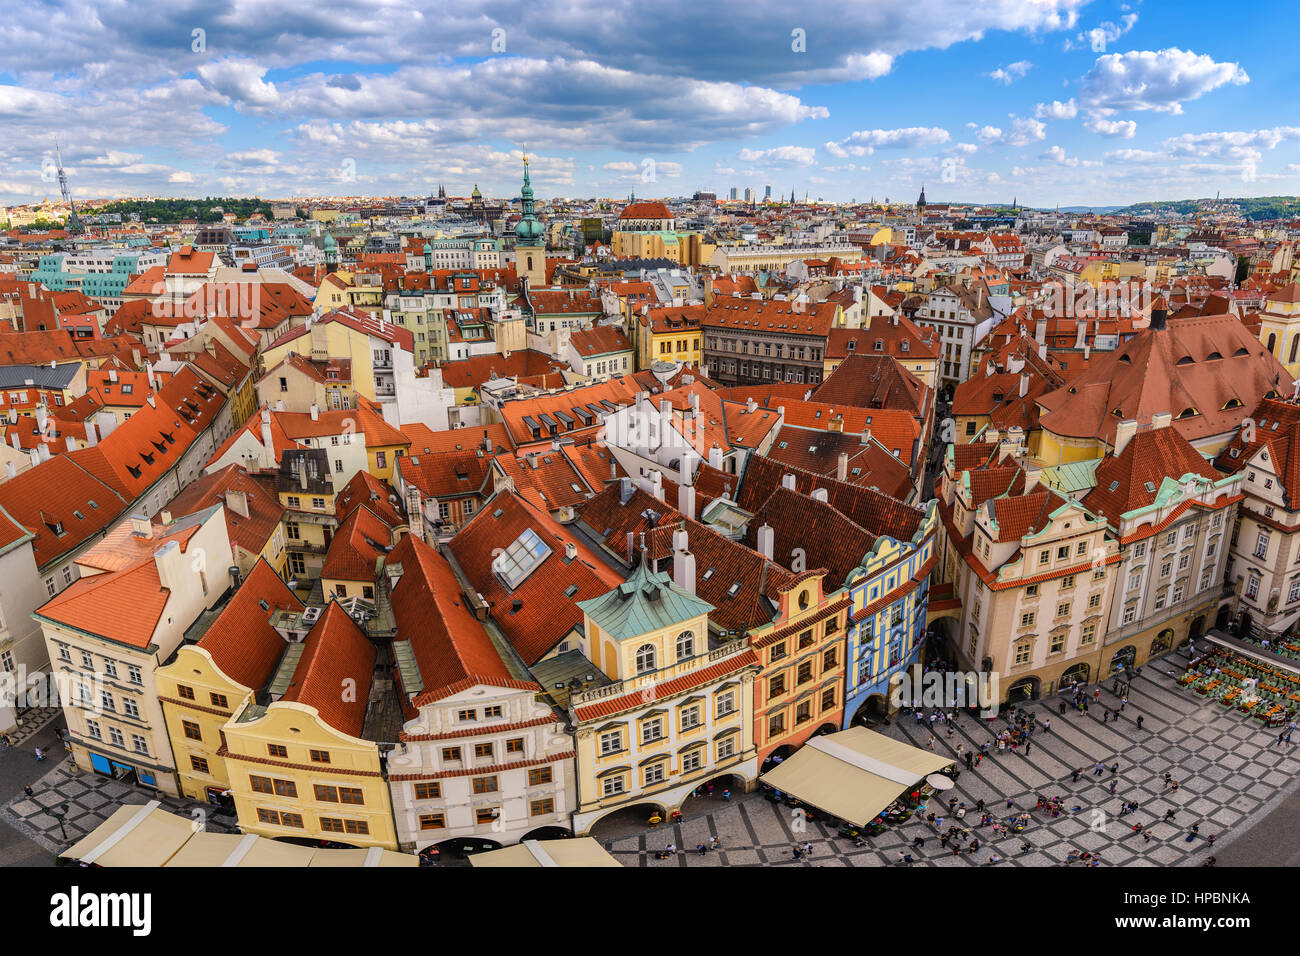 Prague city skyline at Old Town Square, Prague, République Tchèque Photo Stock